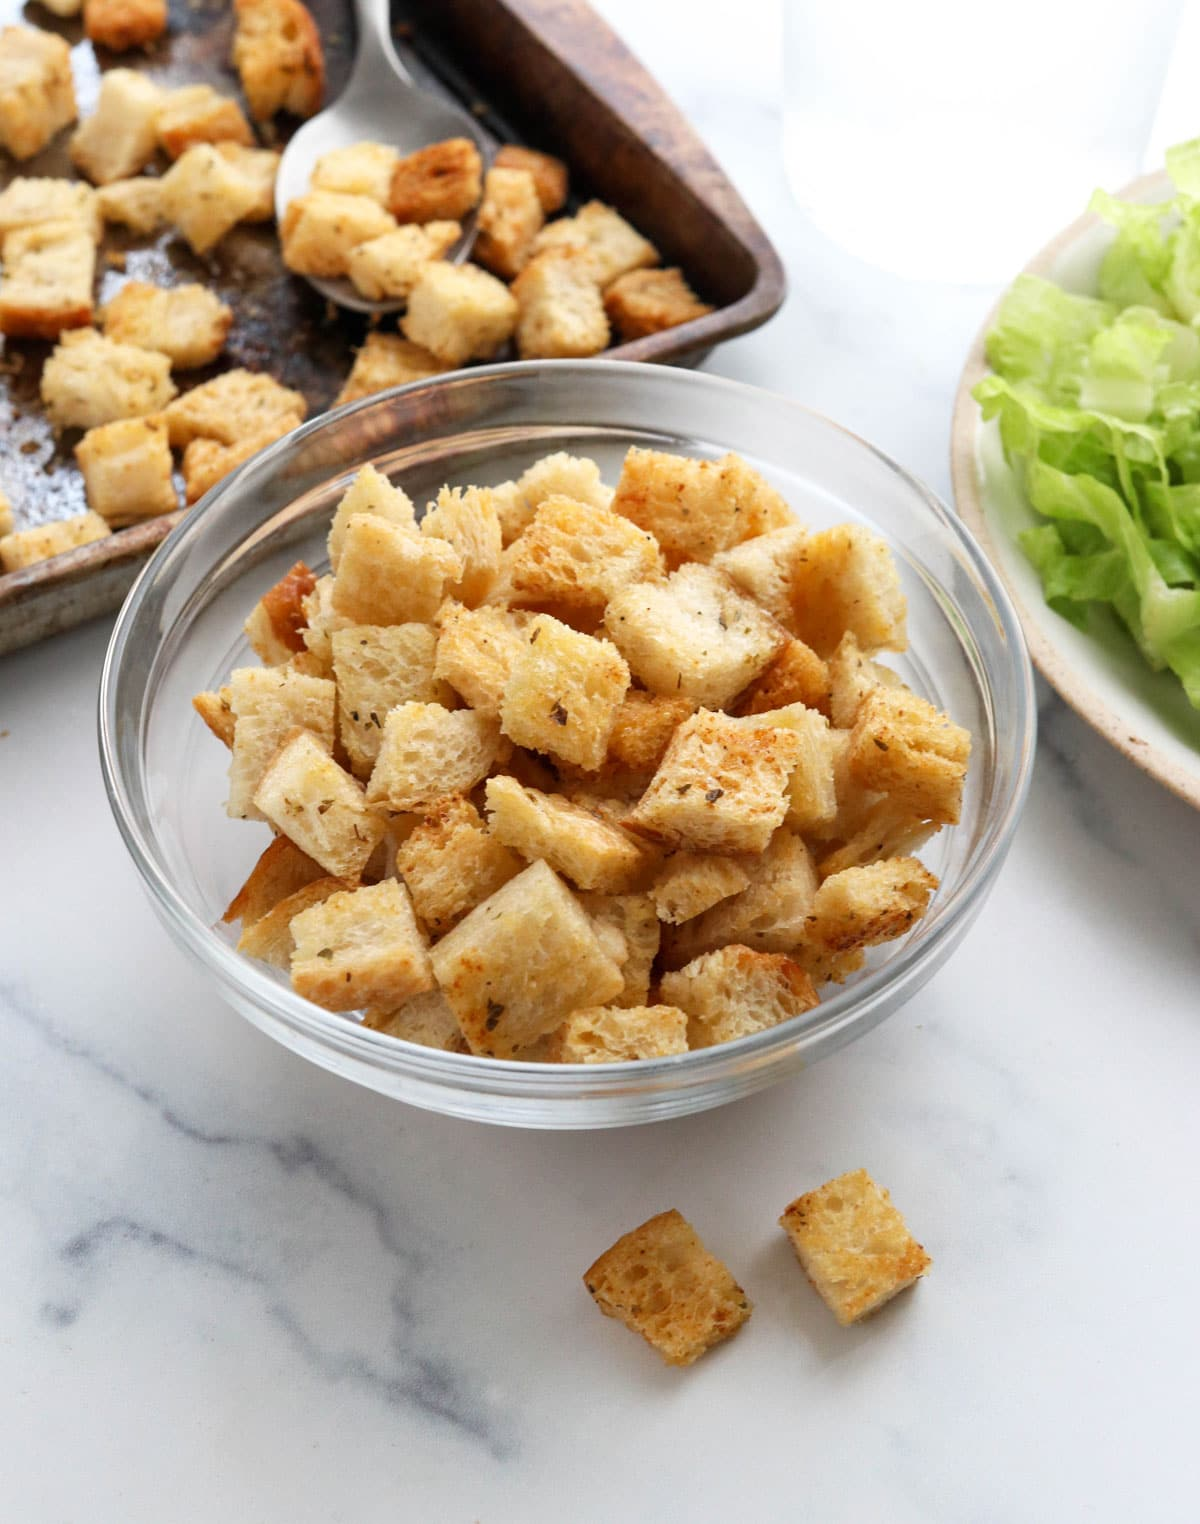 homemade croutons in glass bowl by salad